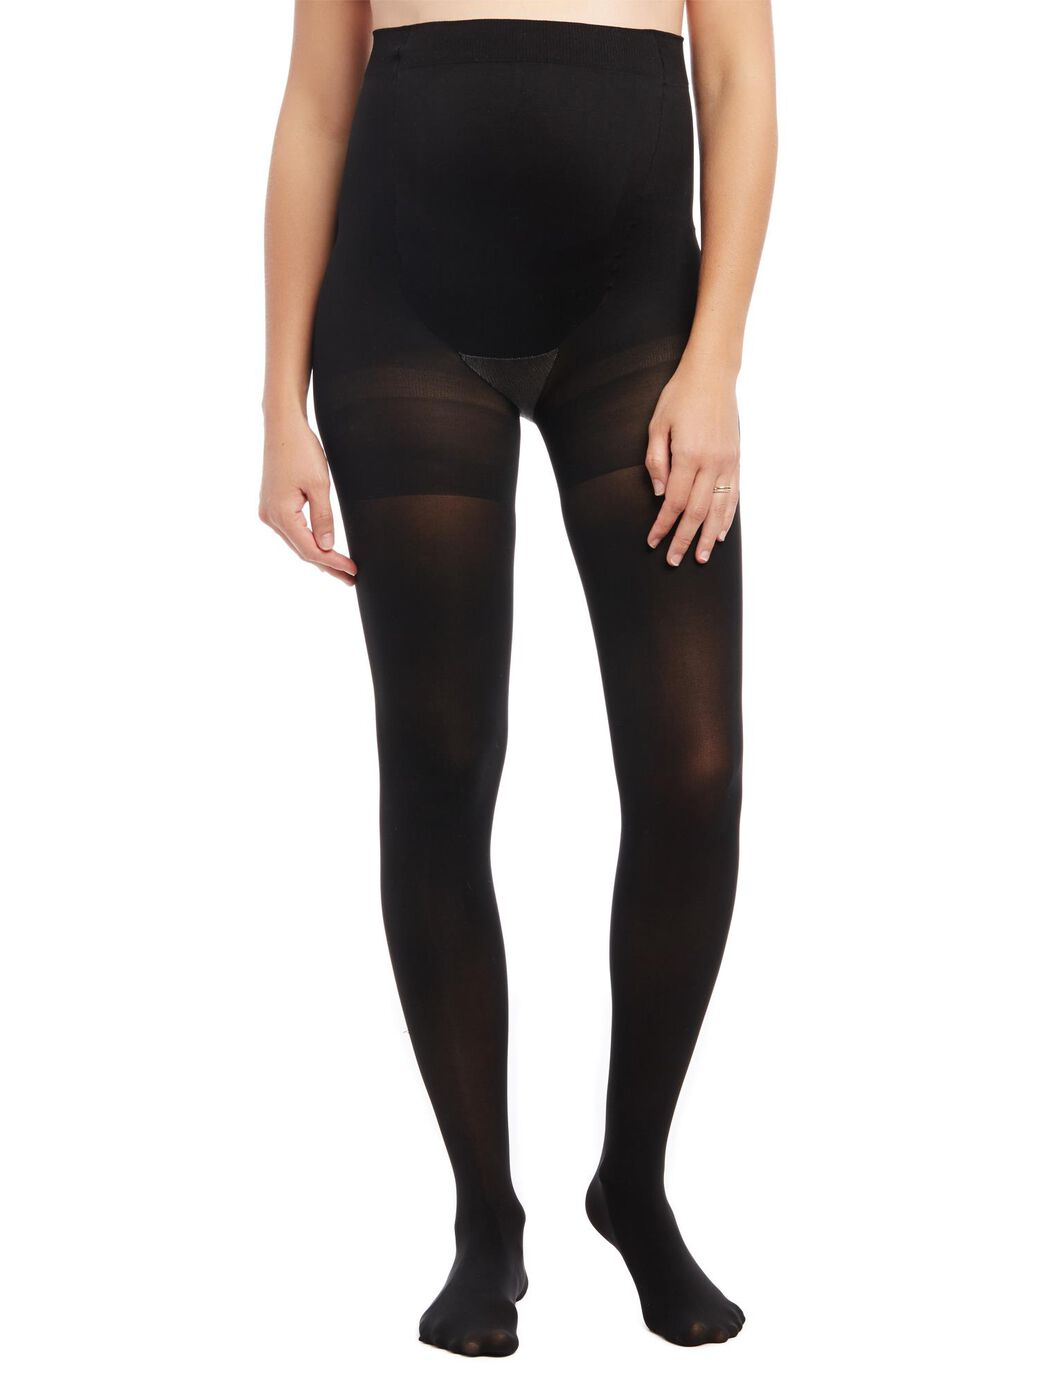 Opaque Light Compression Maternity Tights at Motherhood Maternity in Victor, NY | Tuggl